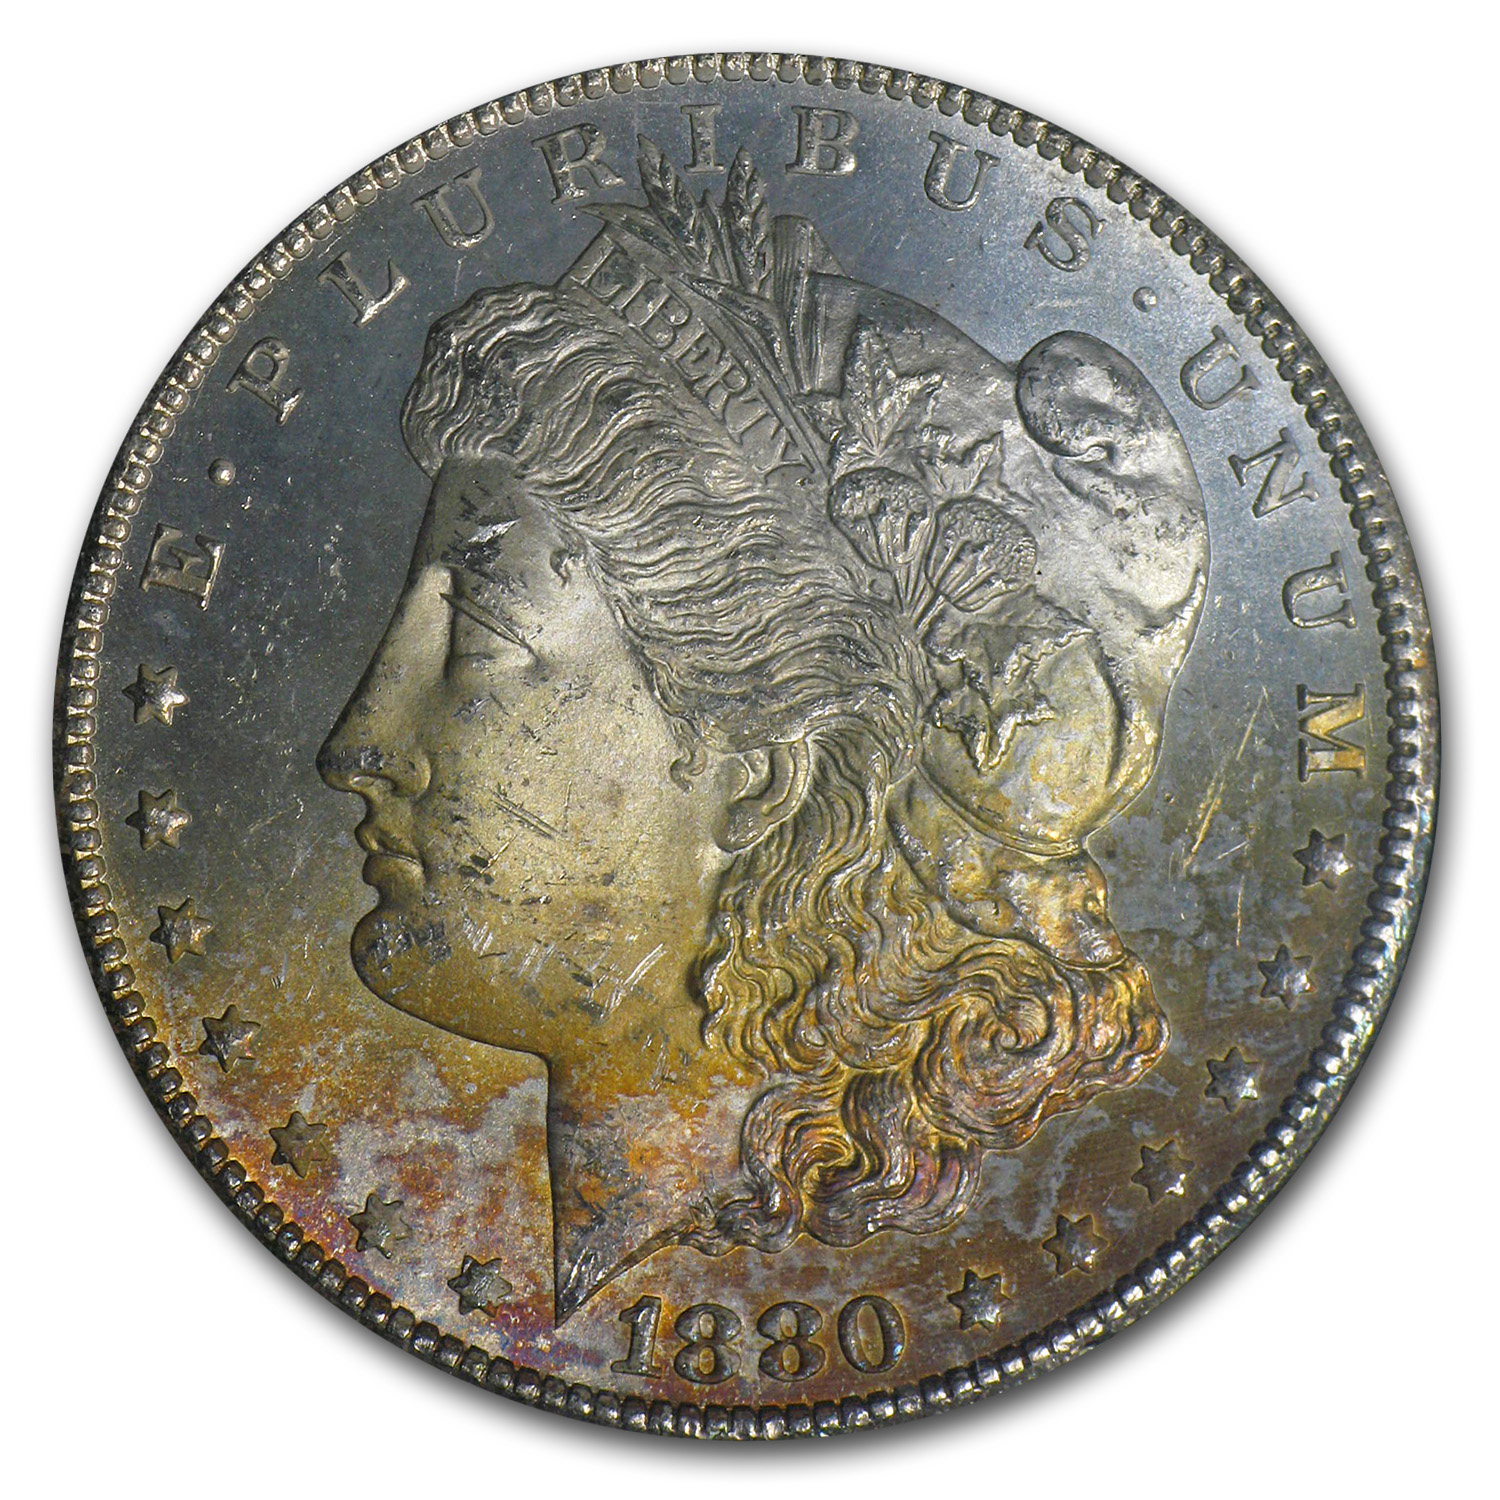 1880-CC Morgan Dollar MS-64 NGC - Pink Toning - GSA Certified